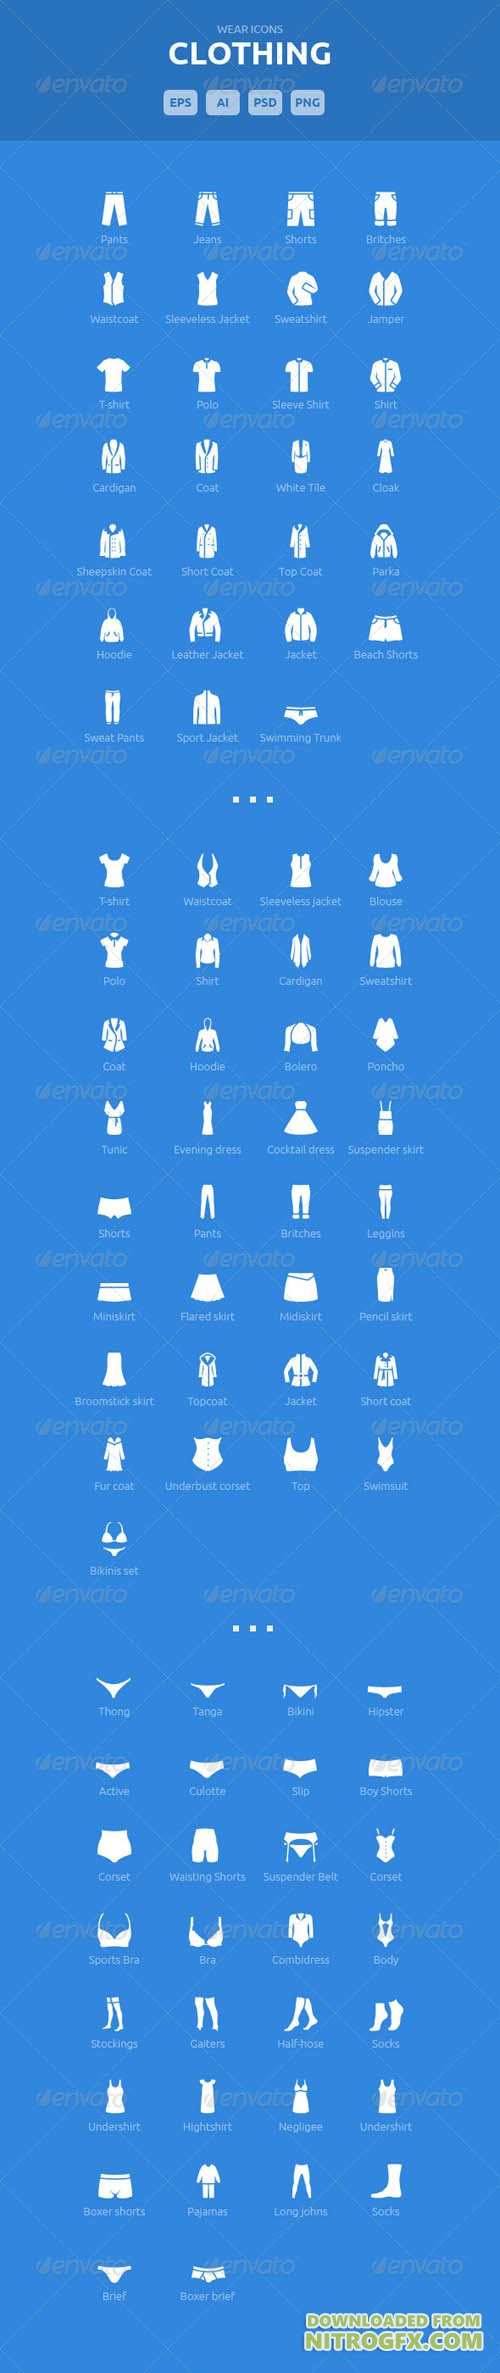 Wear Icons - Clothing Vector Pack 5578044